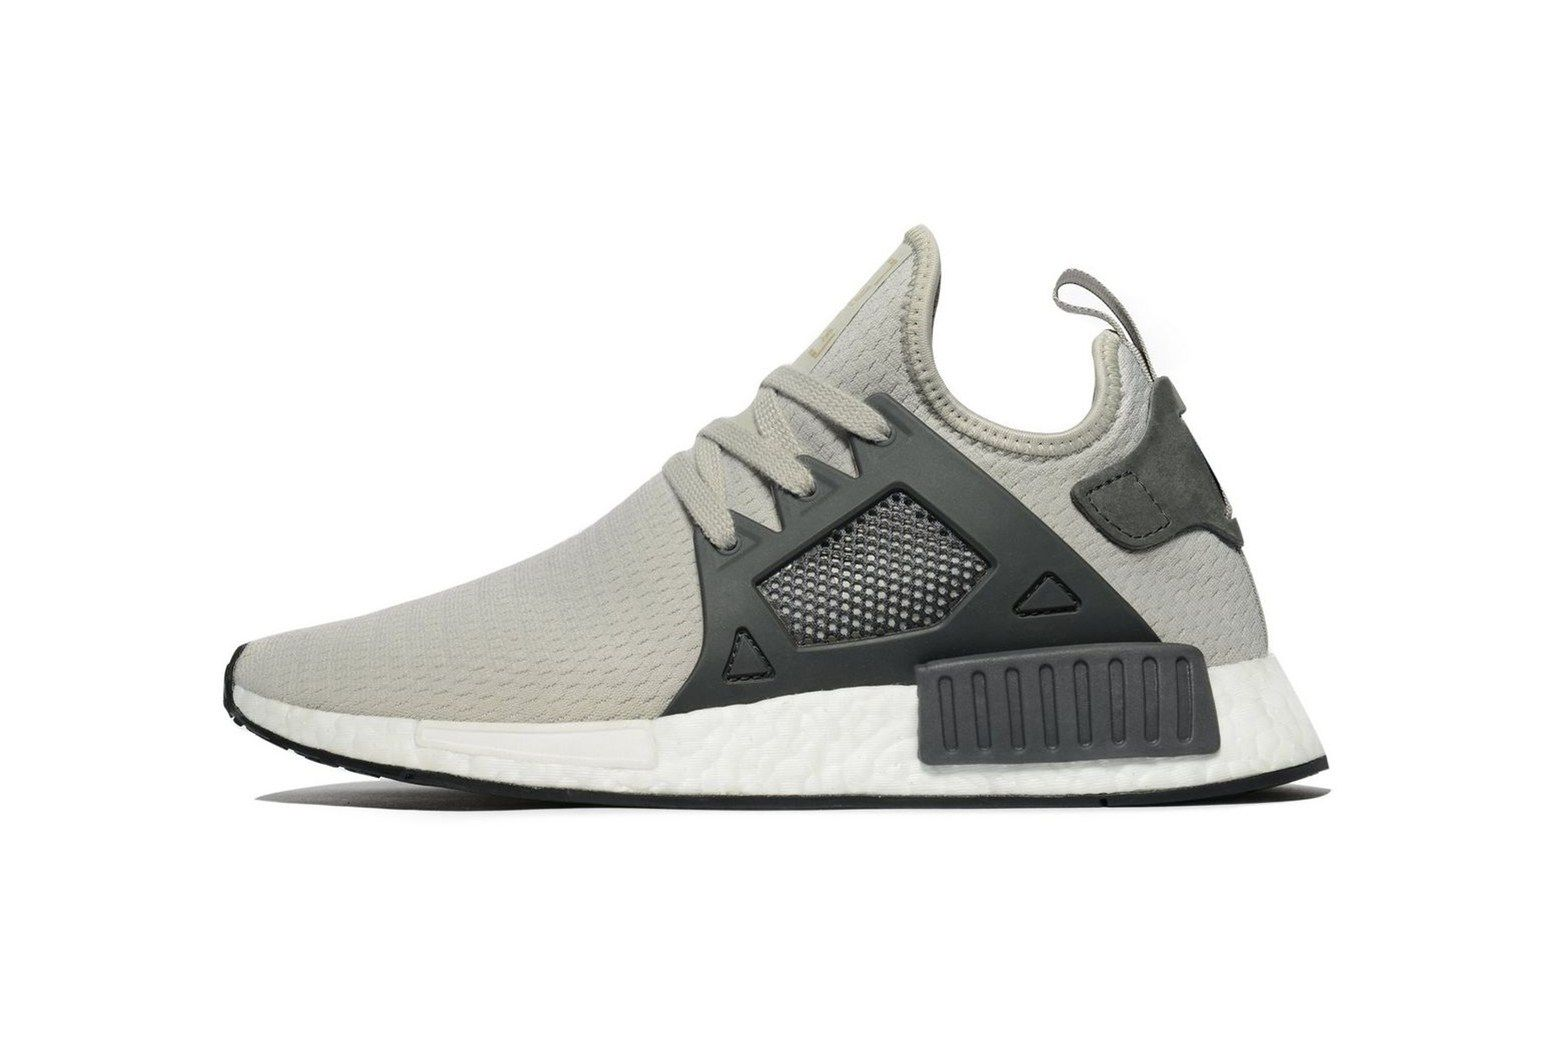 Trio of Exclusive NMD XR1s at JD Sports